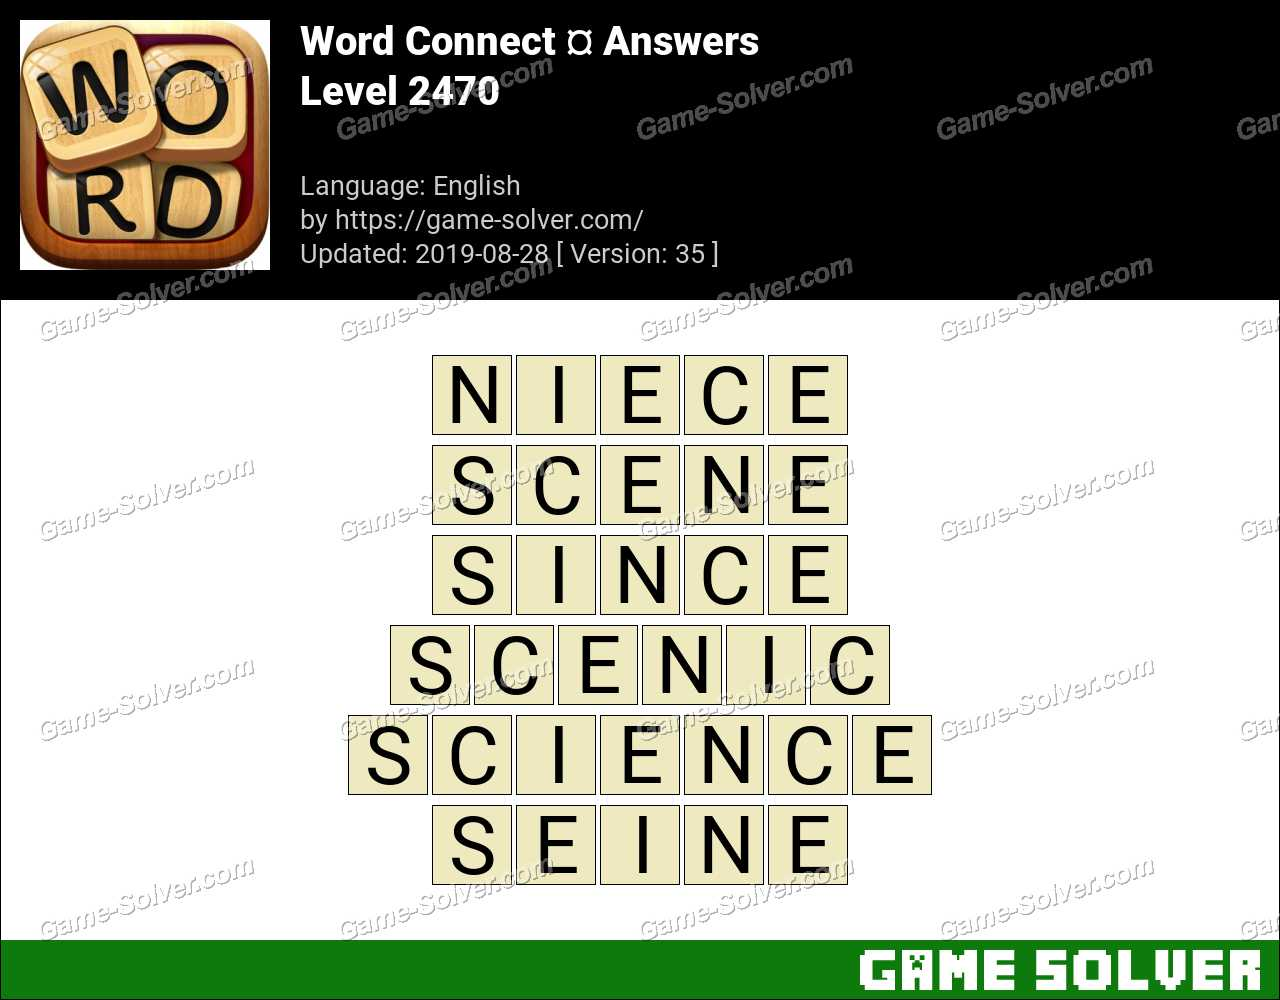 Word Connect Level 2470 Answers